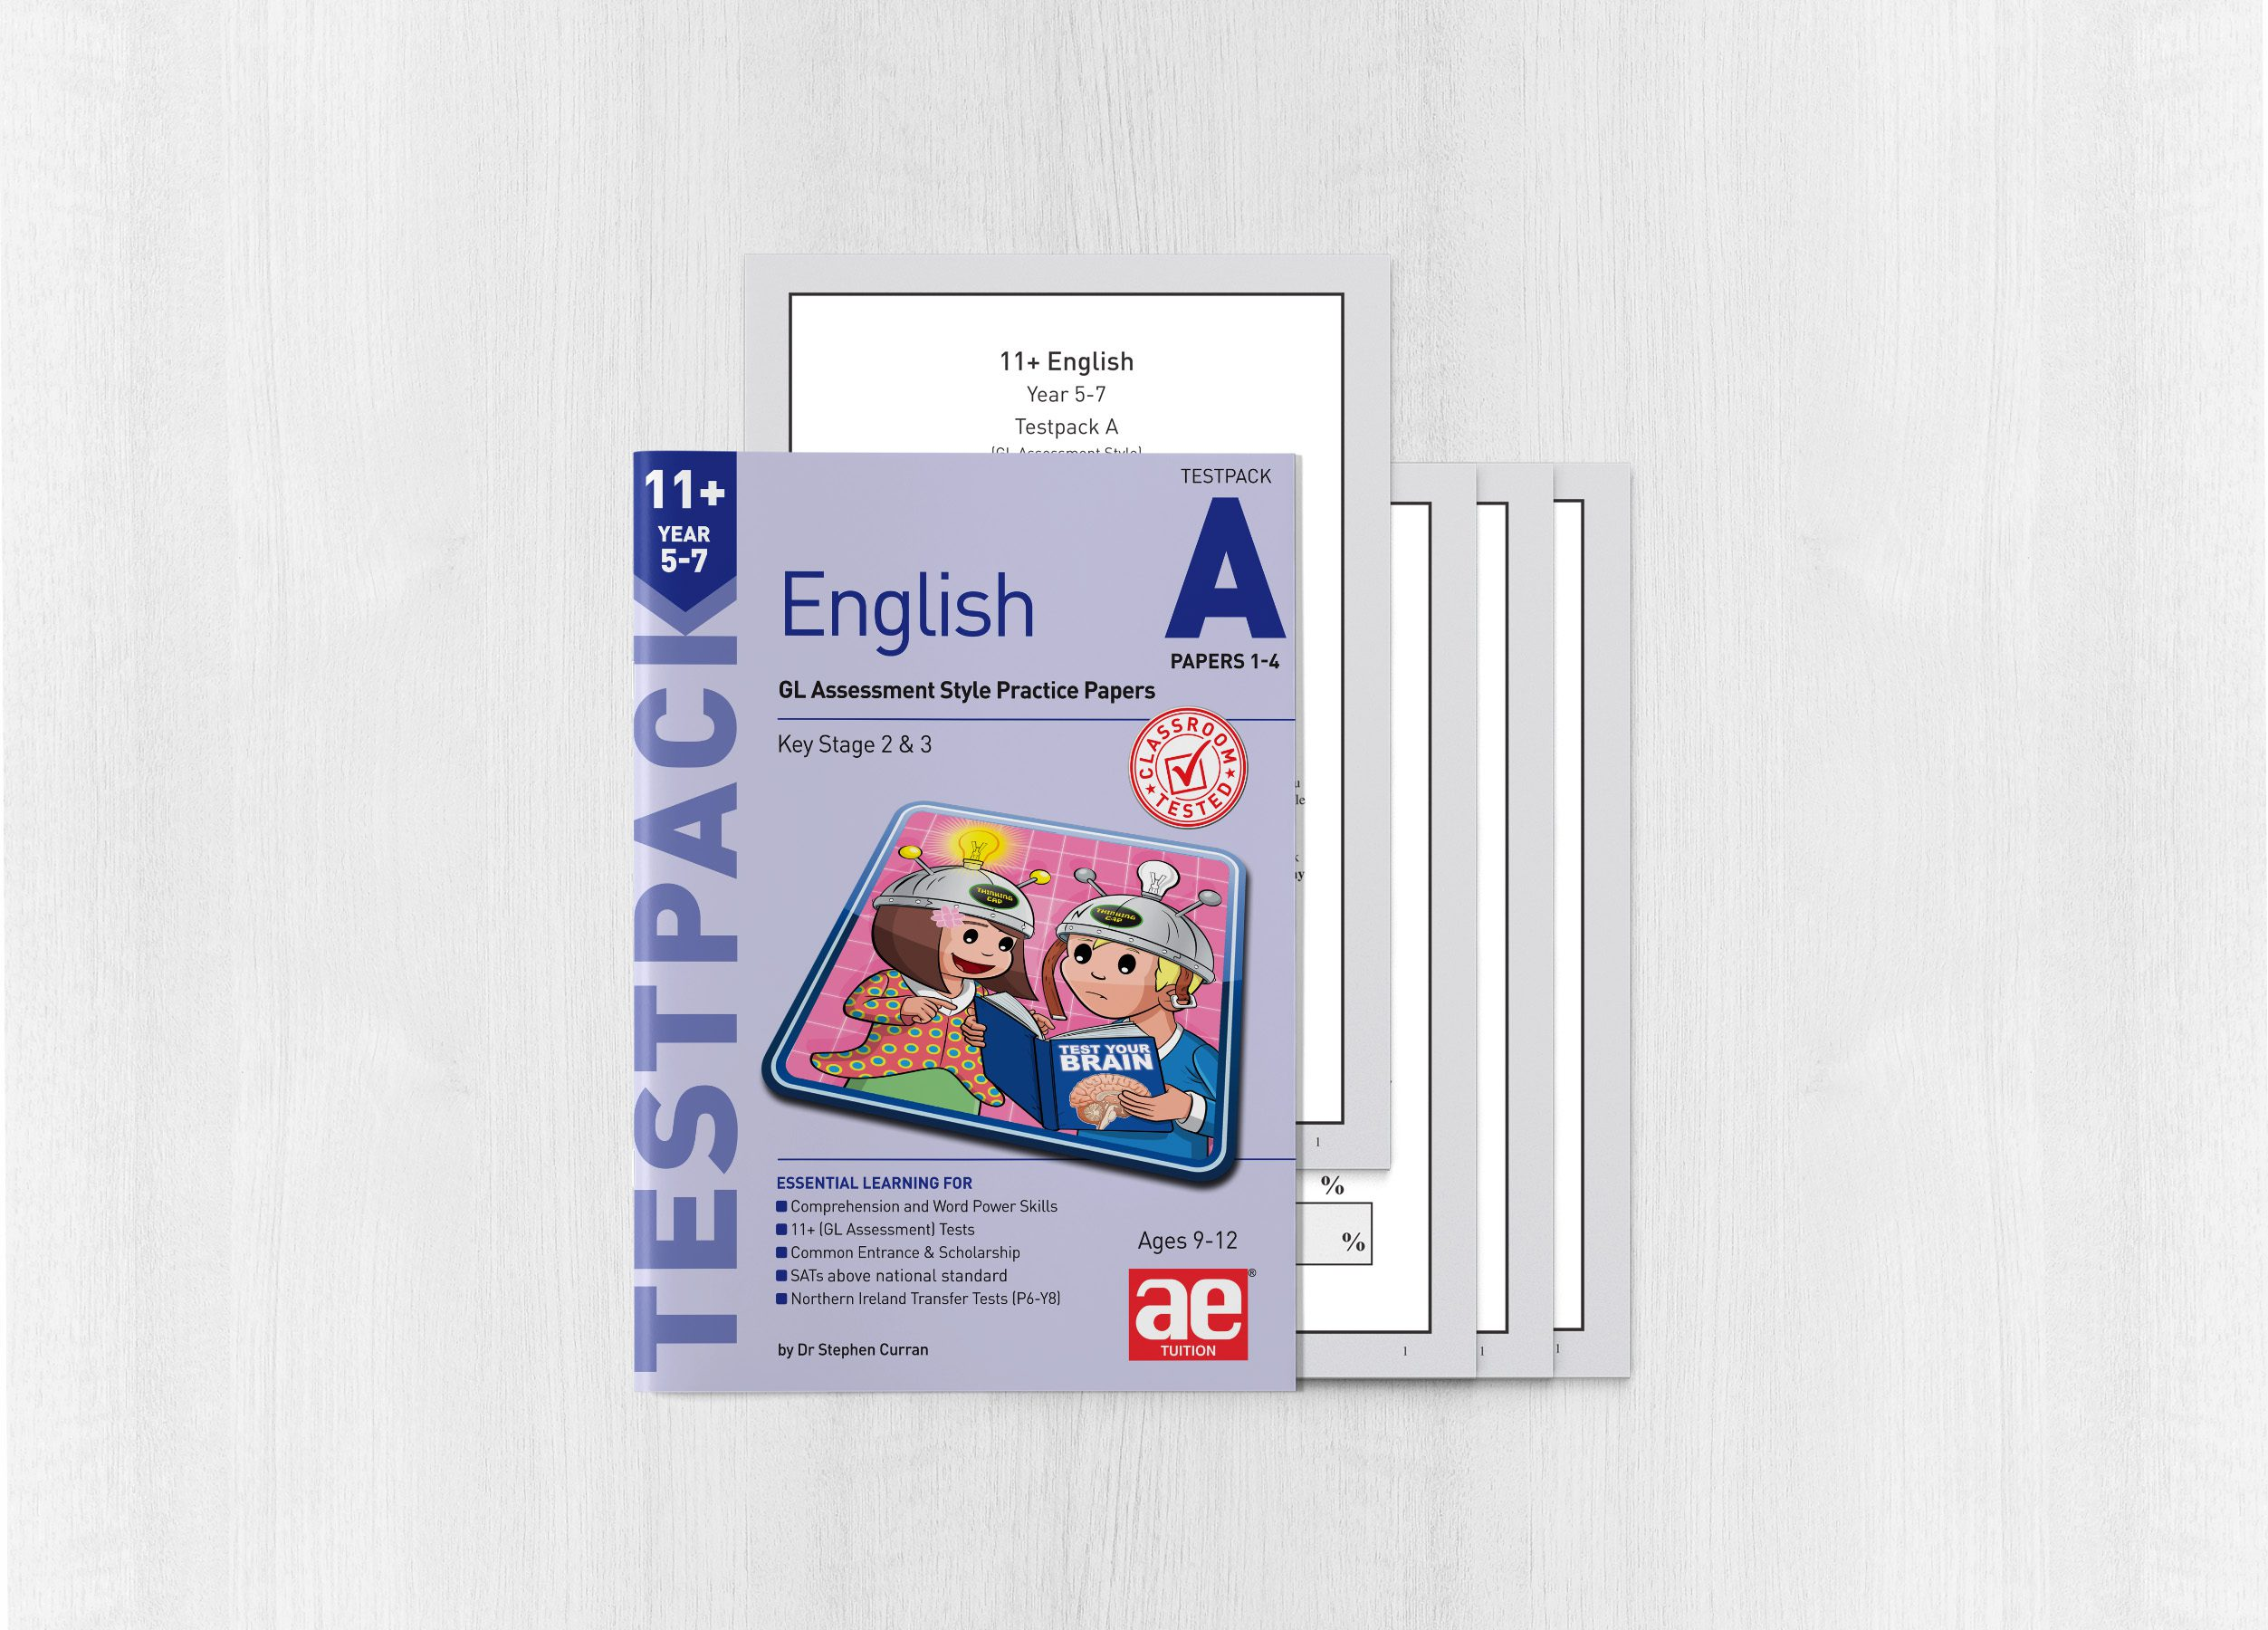 11+ English Year 5-7 Testpack A Papers 1-4 - AE Publications